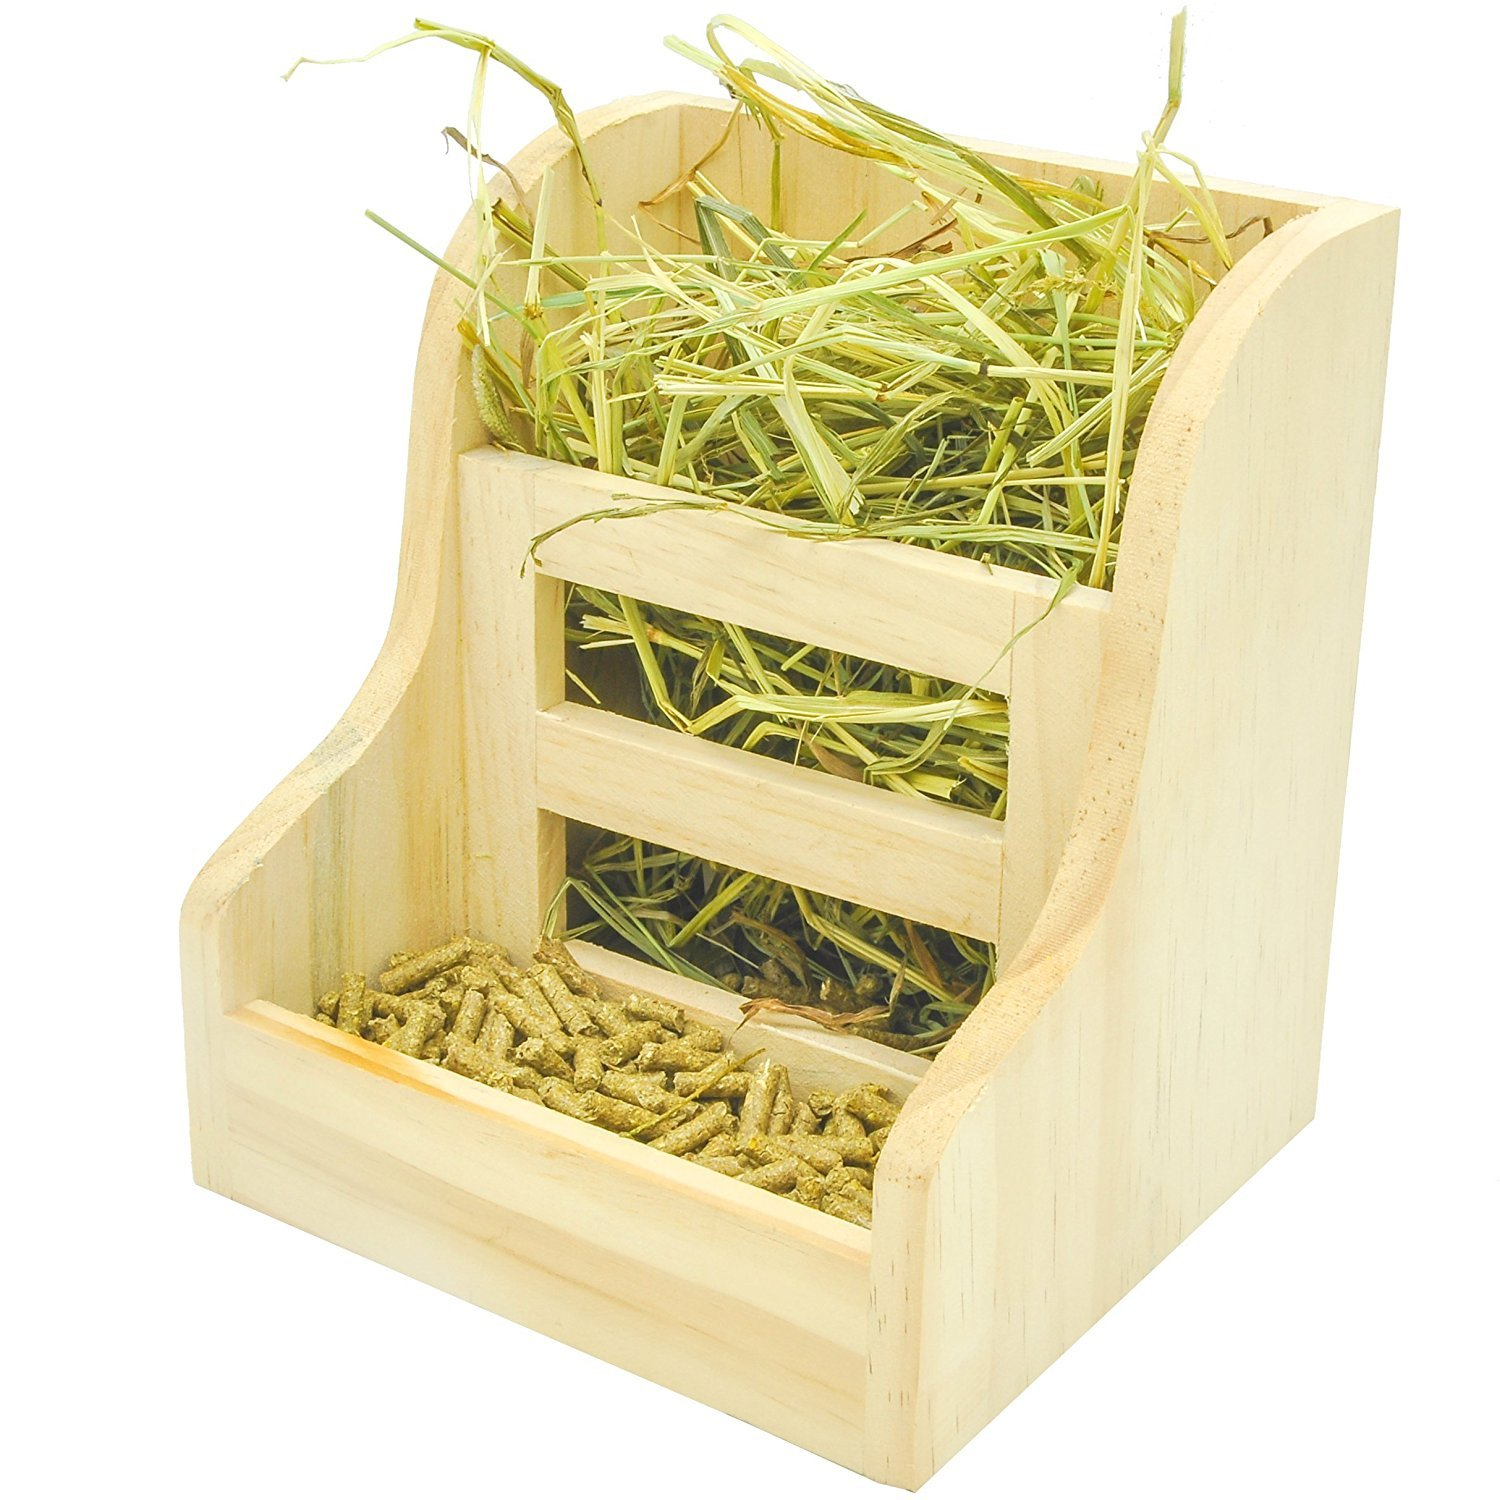 Niteangel Grass and Food Double Use Feeder, Wooden Hay Manger for Rabbits, Guinea Pigs (7'' x 6.3'' x5.8'') by Niteangel